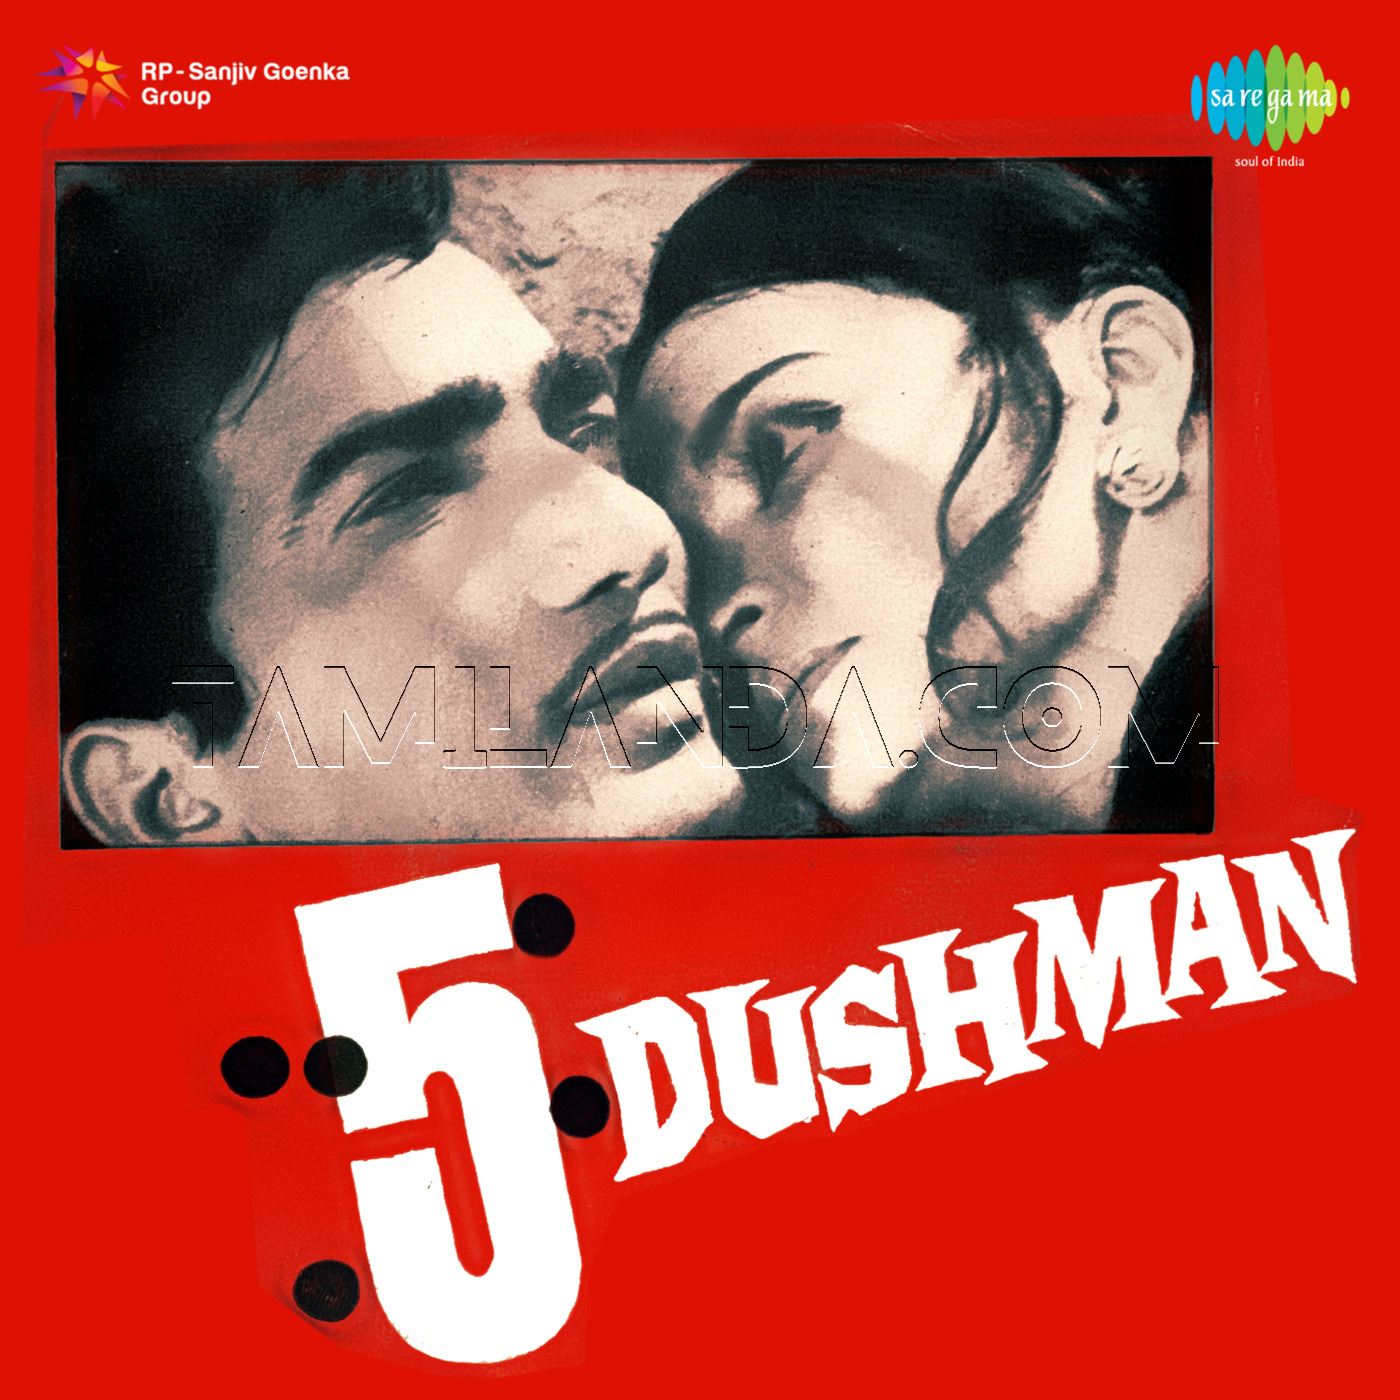 5 Dushman FLAC/WAV Songs